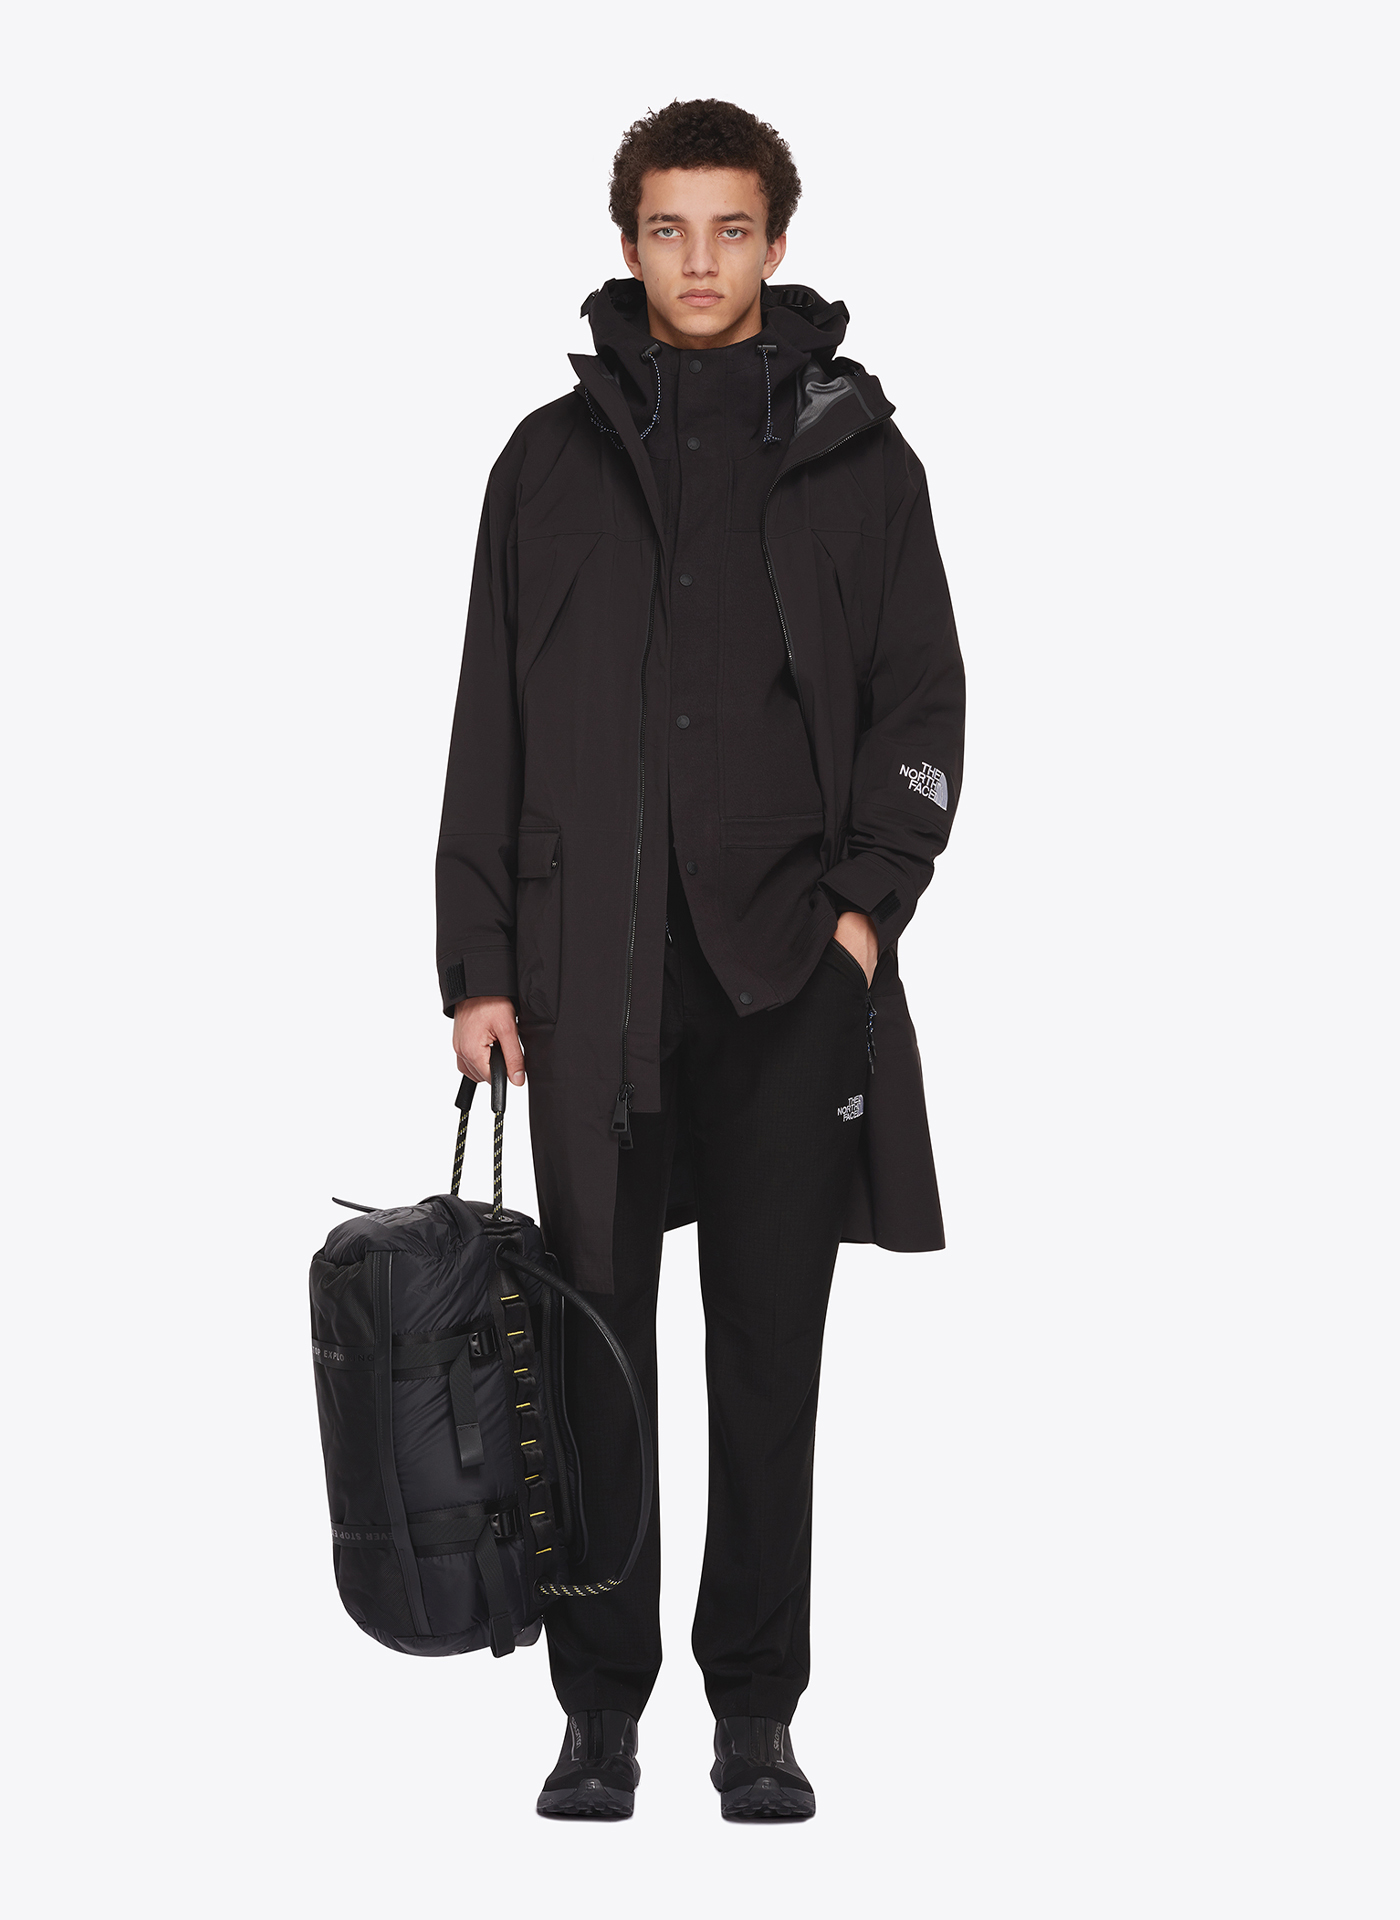 e-commerce menswear model wearing all black street style coat and trousers with handbag